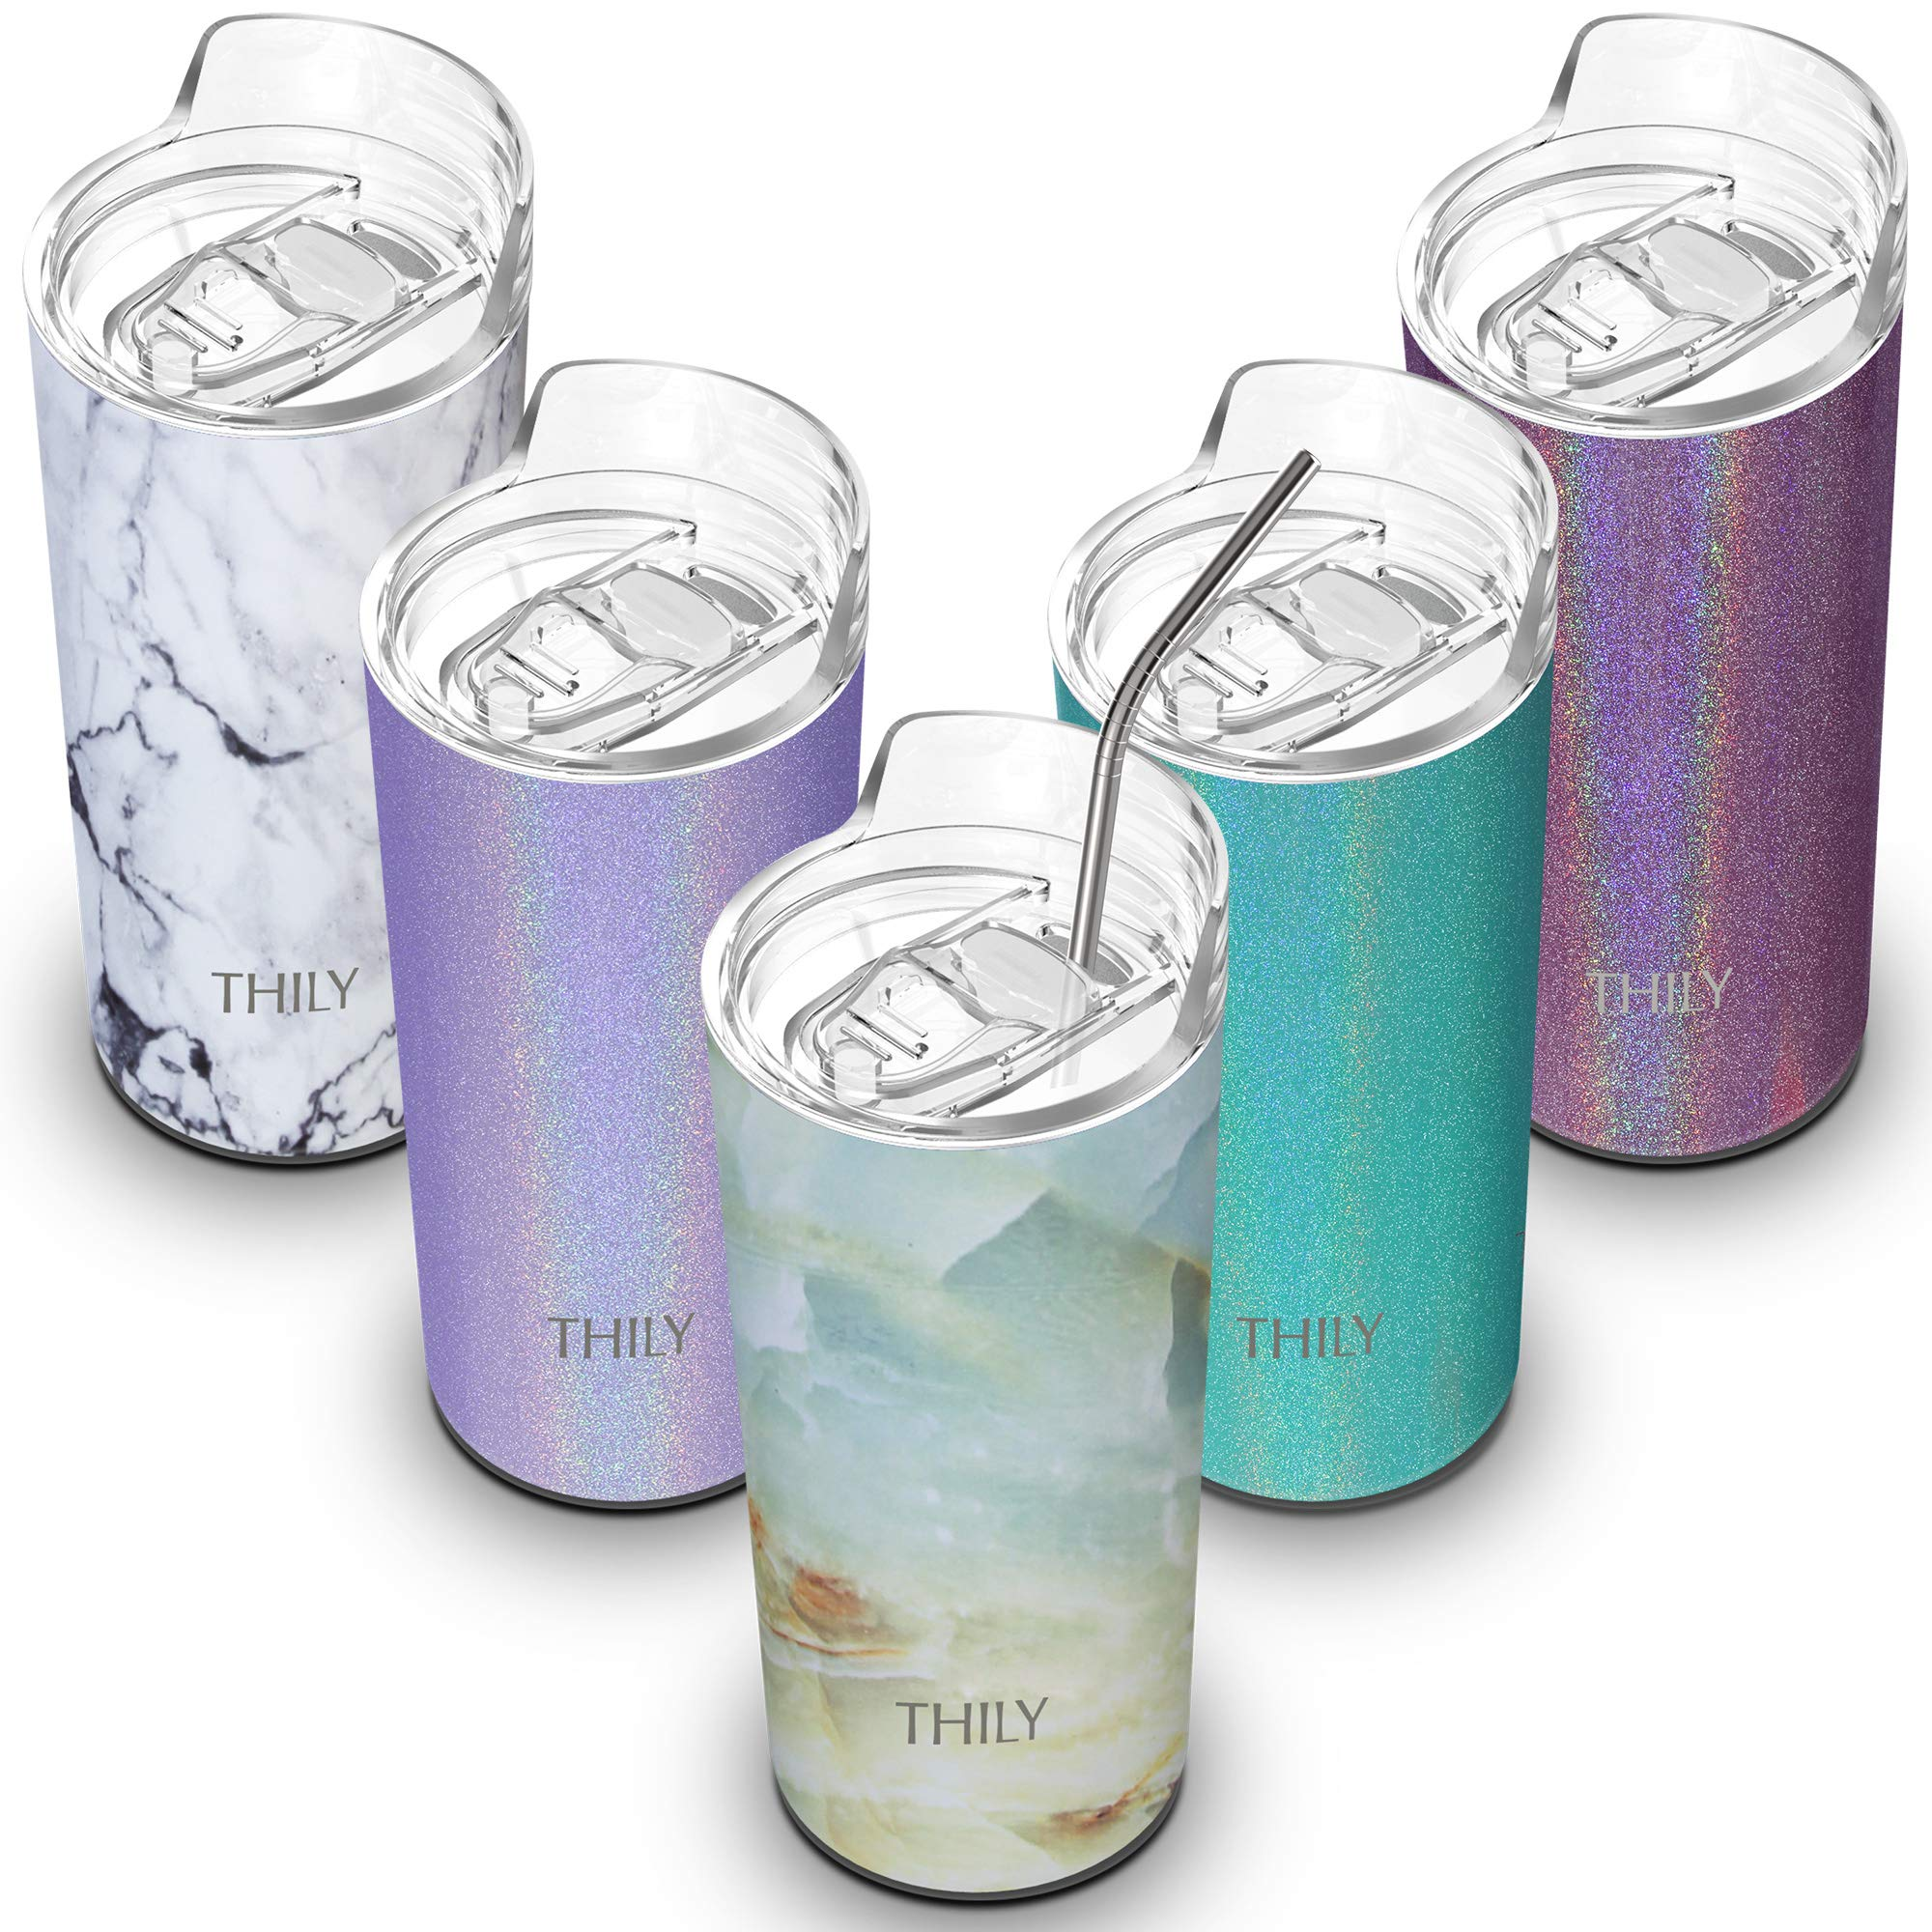 Vacuum Insulated Travel Skinny Tumbler - THILY 16 oz Triple-Insulated Cup with Splash-proof Lid and Reusable Straw, BPA Free, Birthday Christmas Gift, Keep Cold for Ice Water, Coffee, Opal Marble